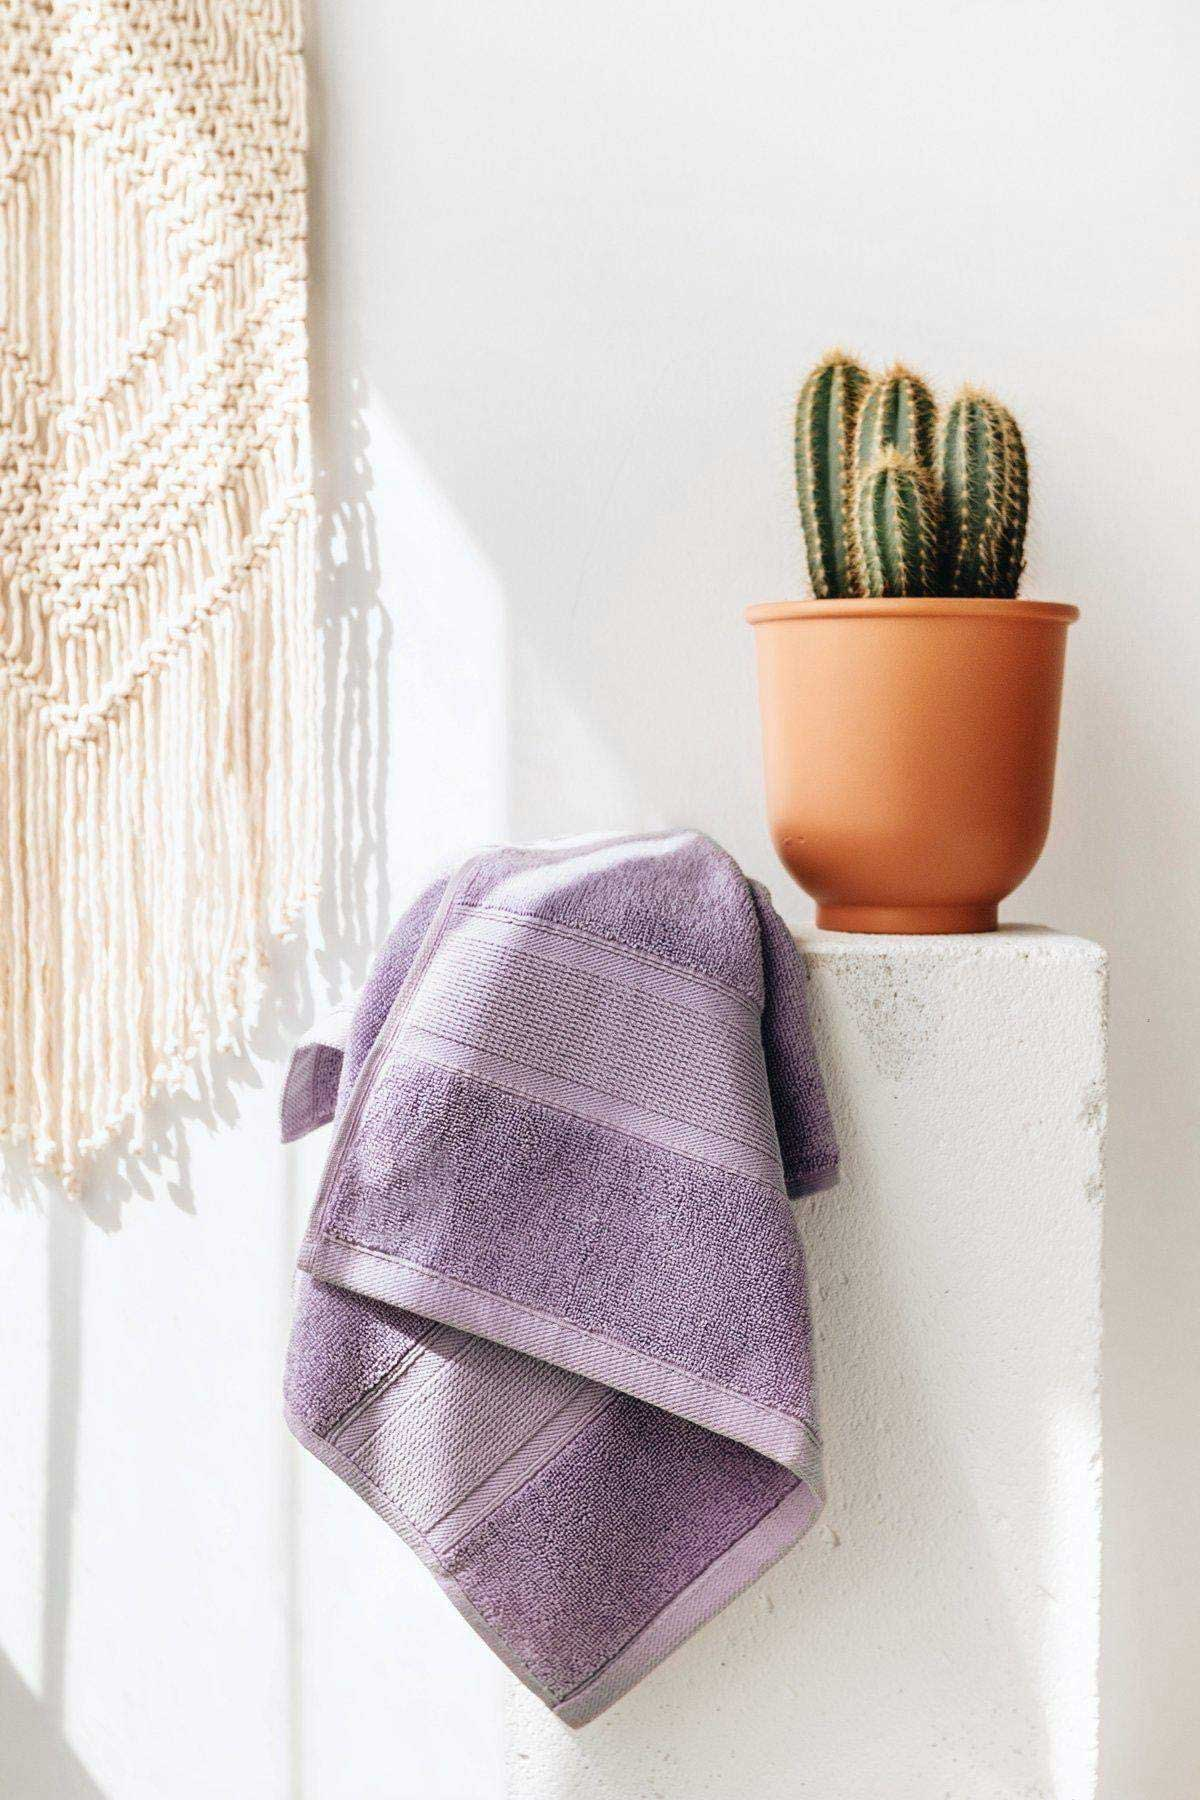 Premium Turkish Cotton Lavender Towel